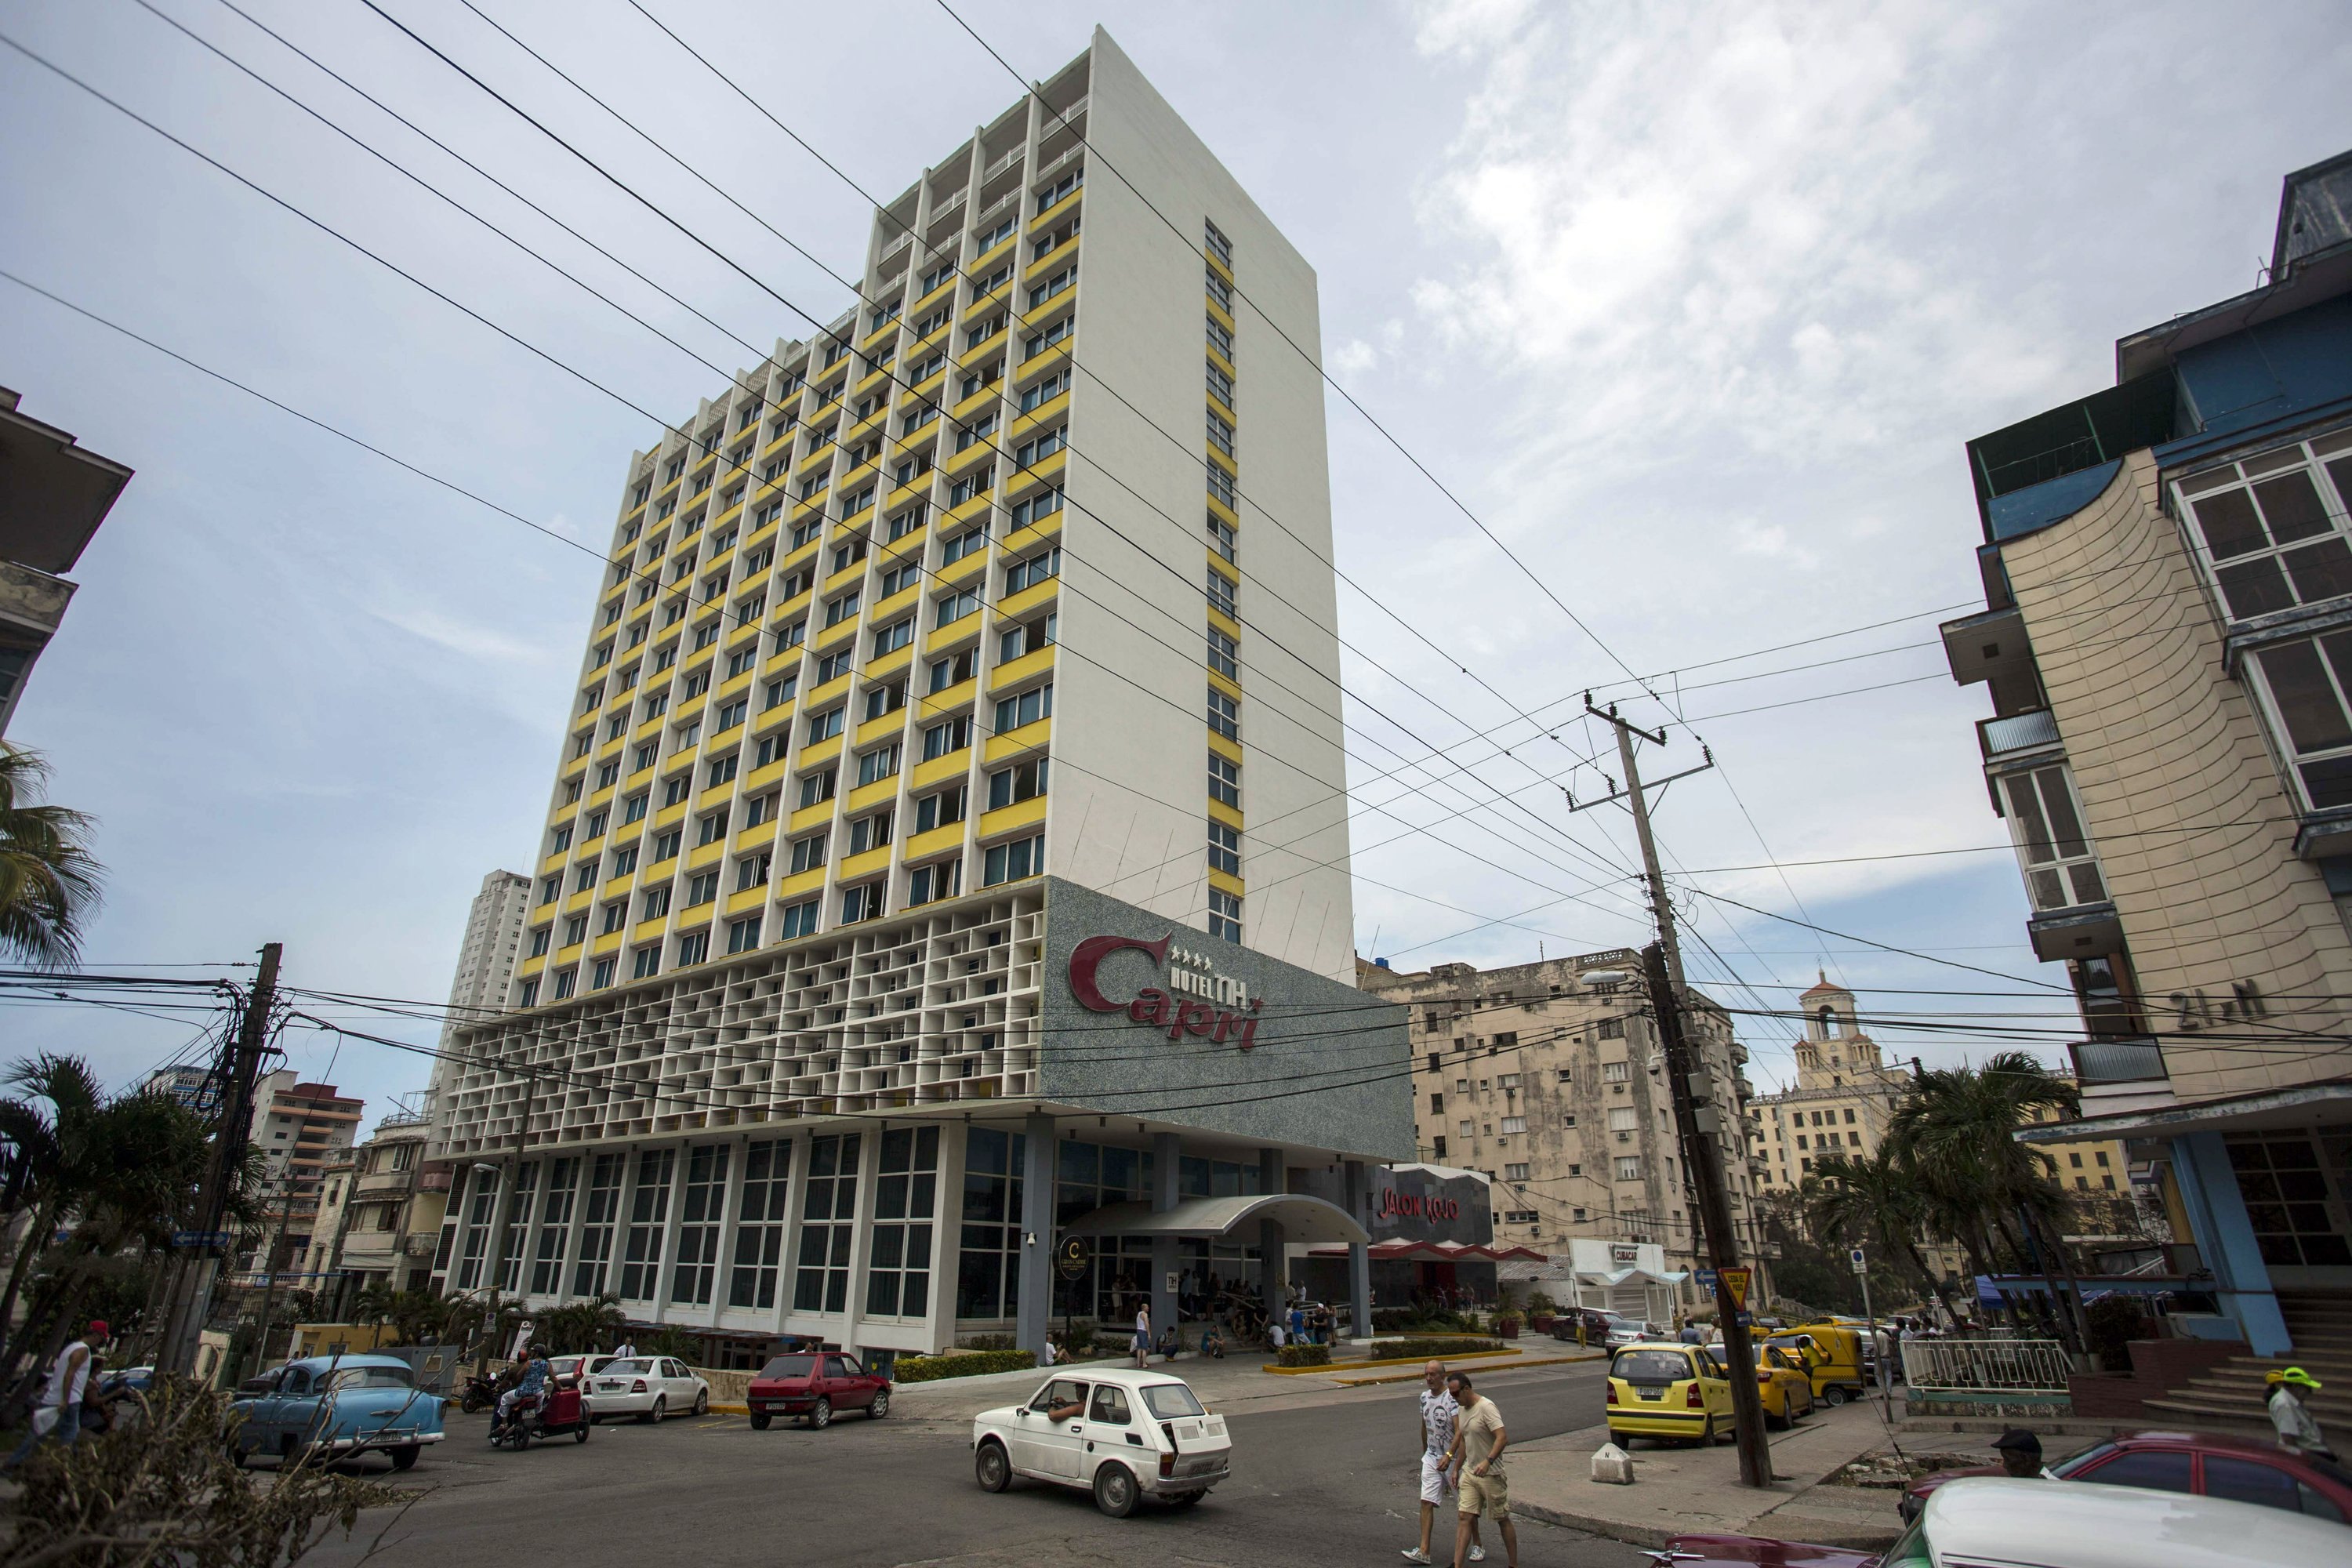 Cuba mystery grows: New details on what befell US diplomats